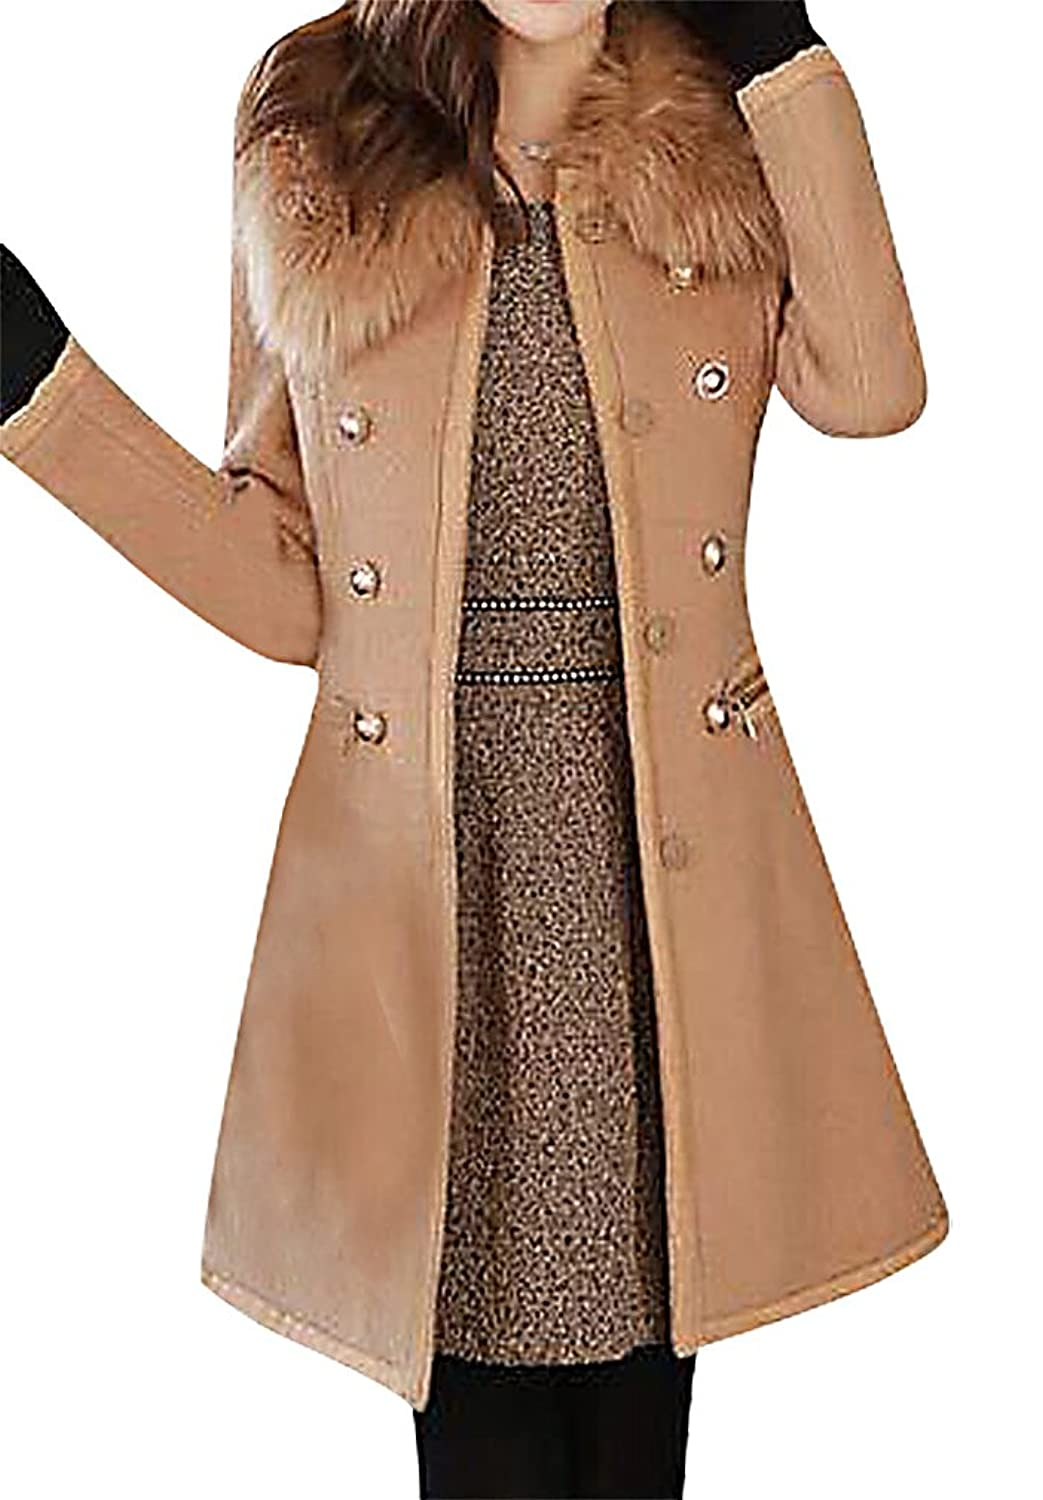 US&R, Women's Fitted Faux Fur Wool Blend Trench Coat Winter Fashion Jacket